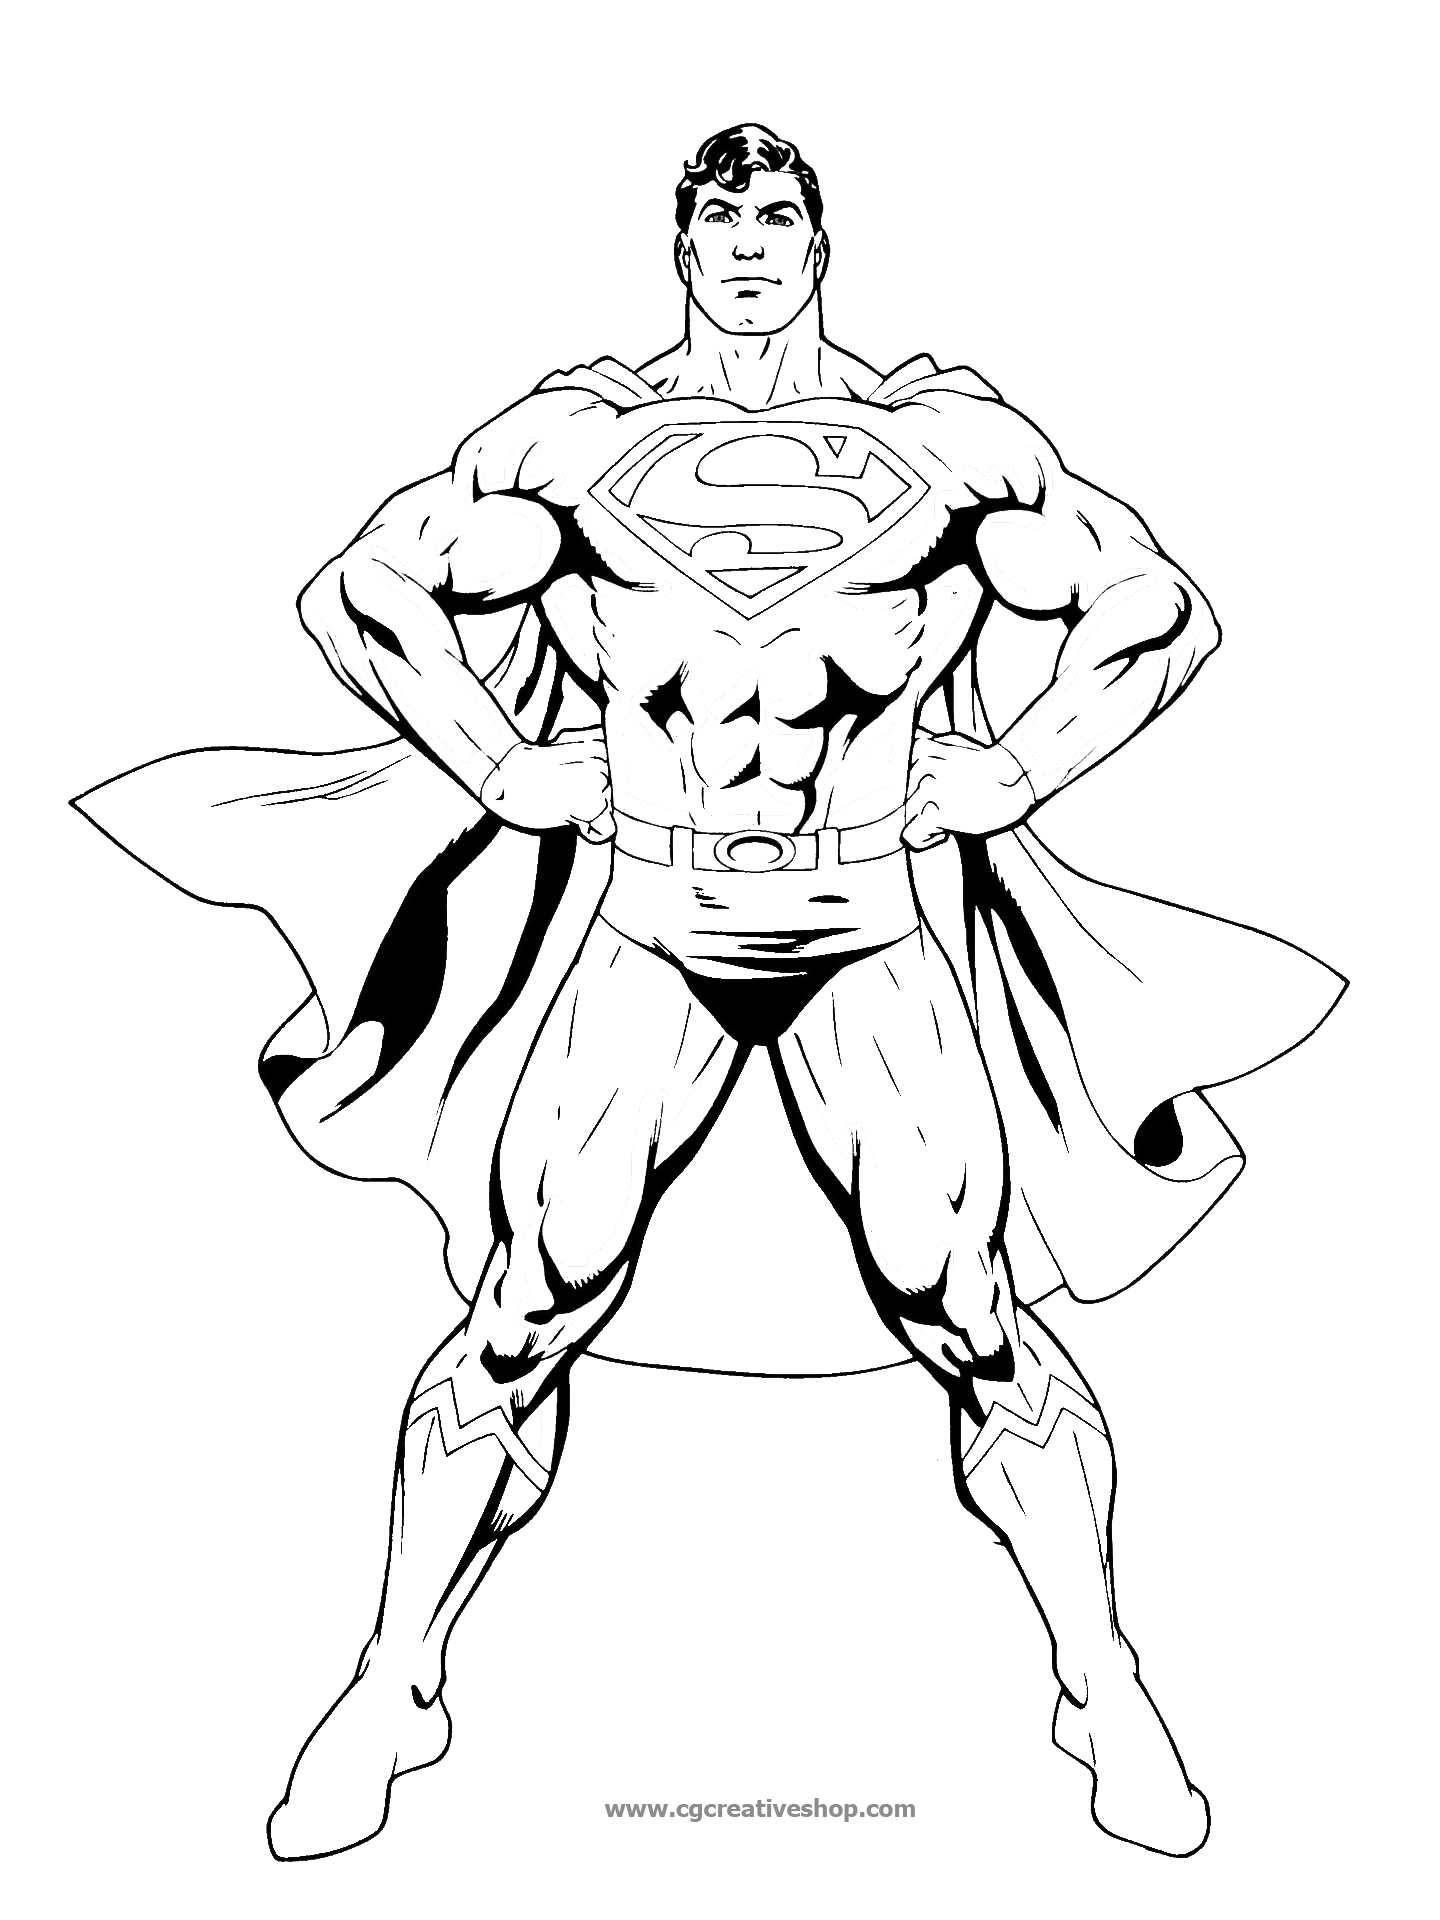 Dc Comics Coloring Pages - Superman Disegno Da Colorare